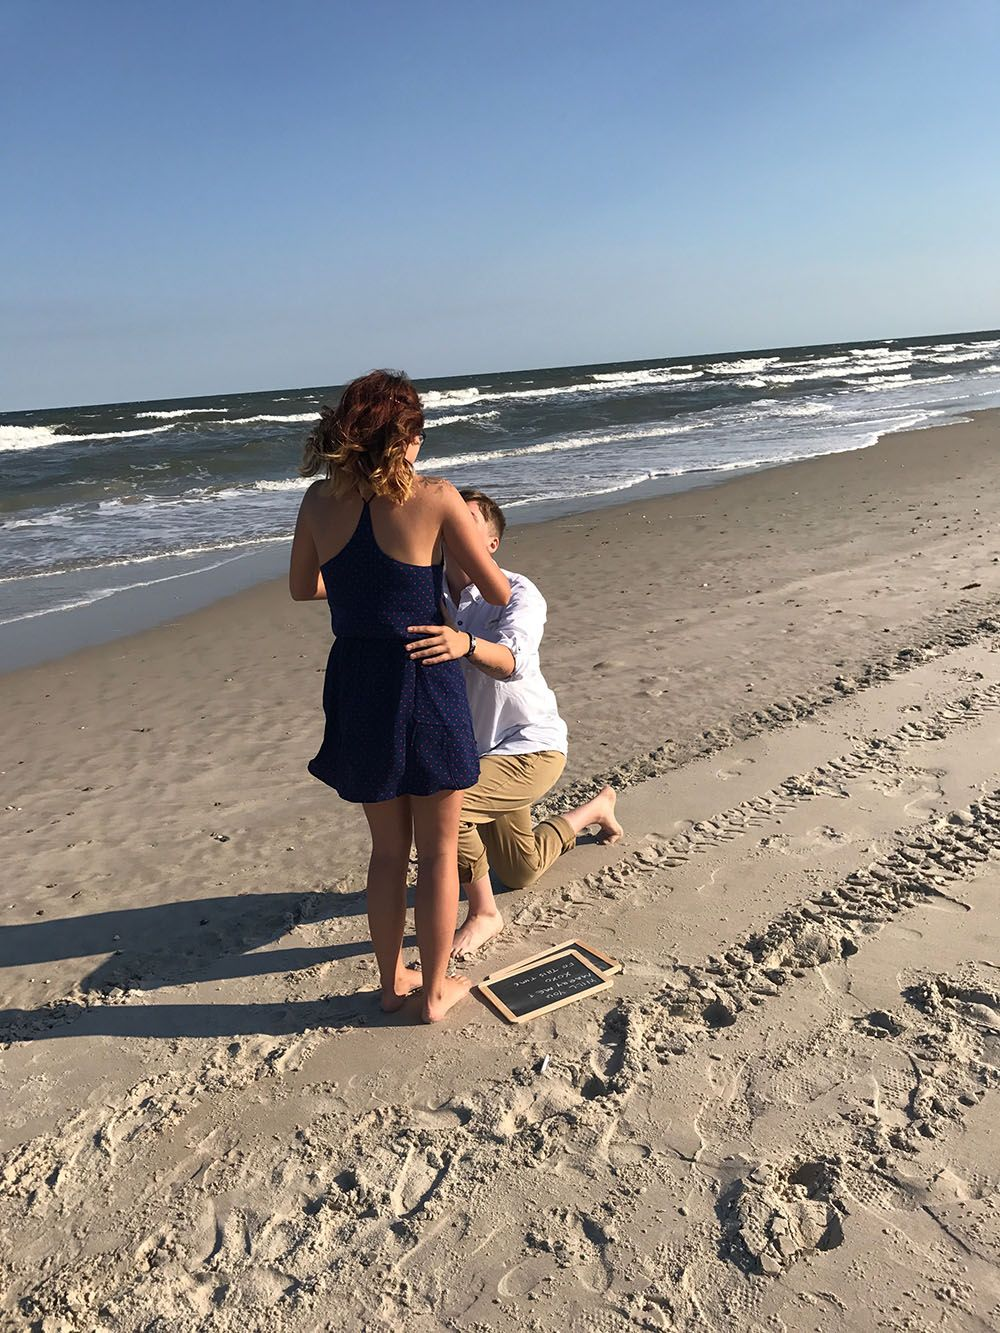 Couples having sex on the beach picture 41